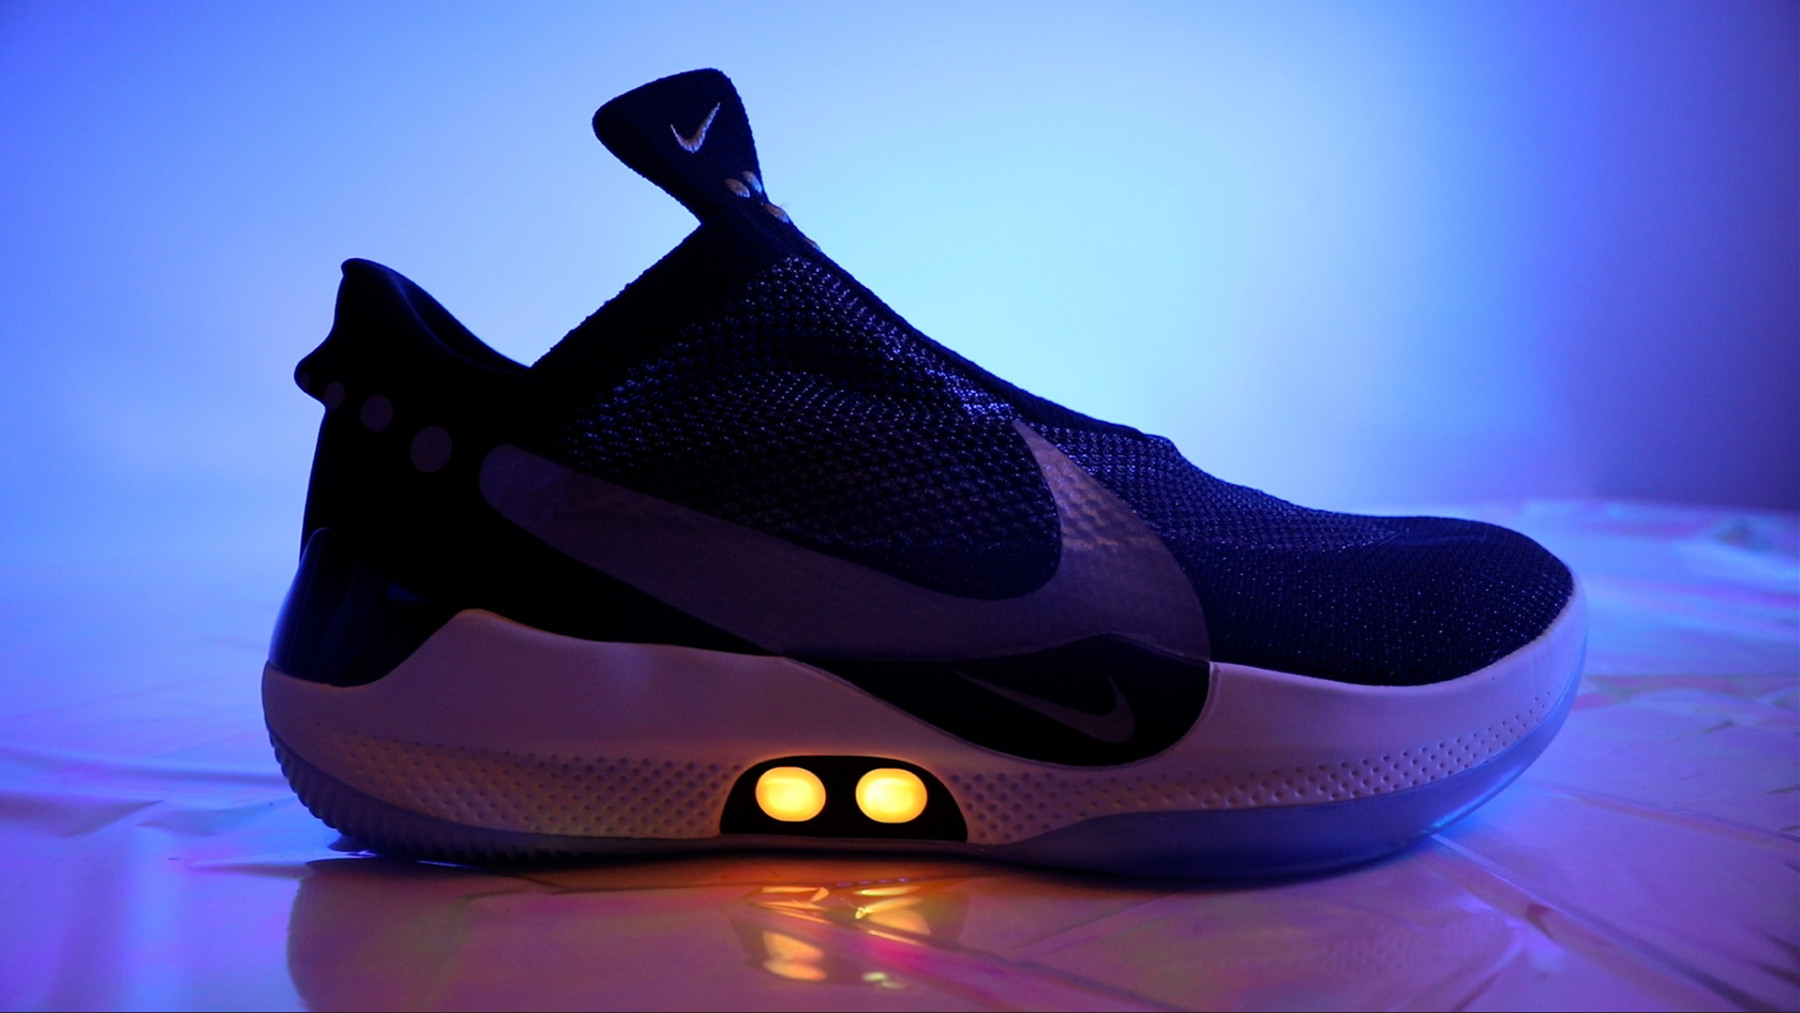 We Tested the Auto-Lacing Nike Adapt BB, Here's Why It's Worth $350